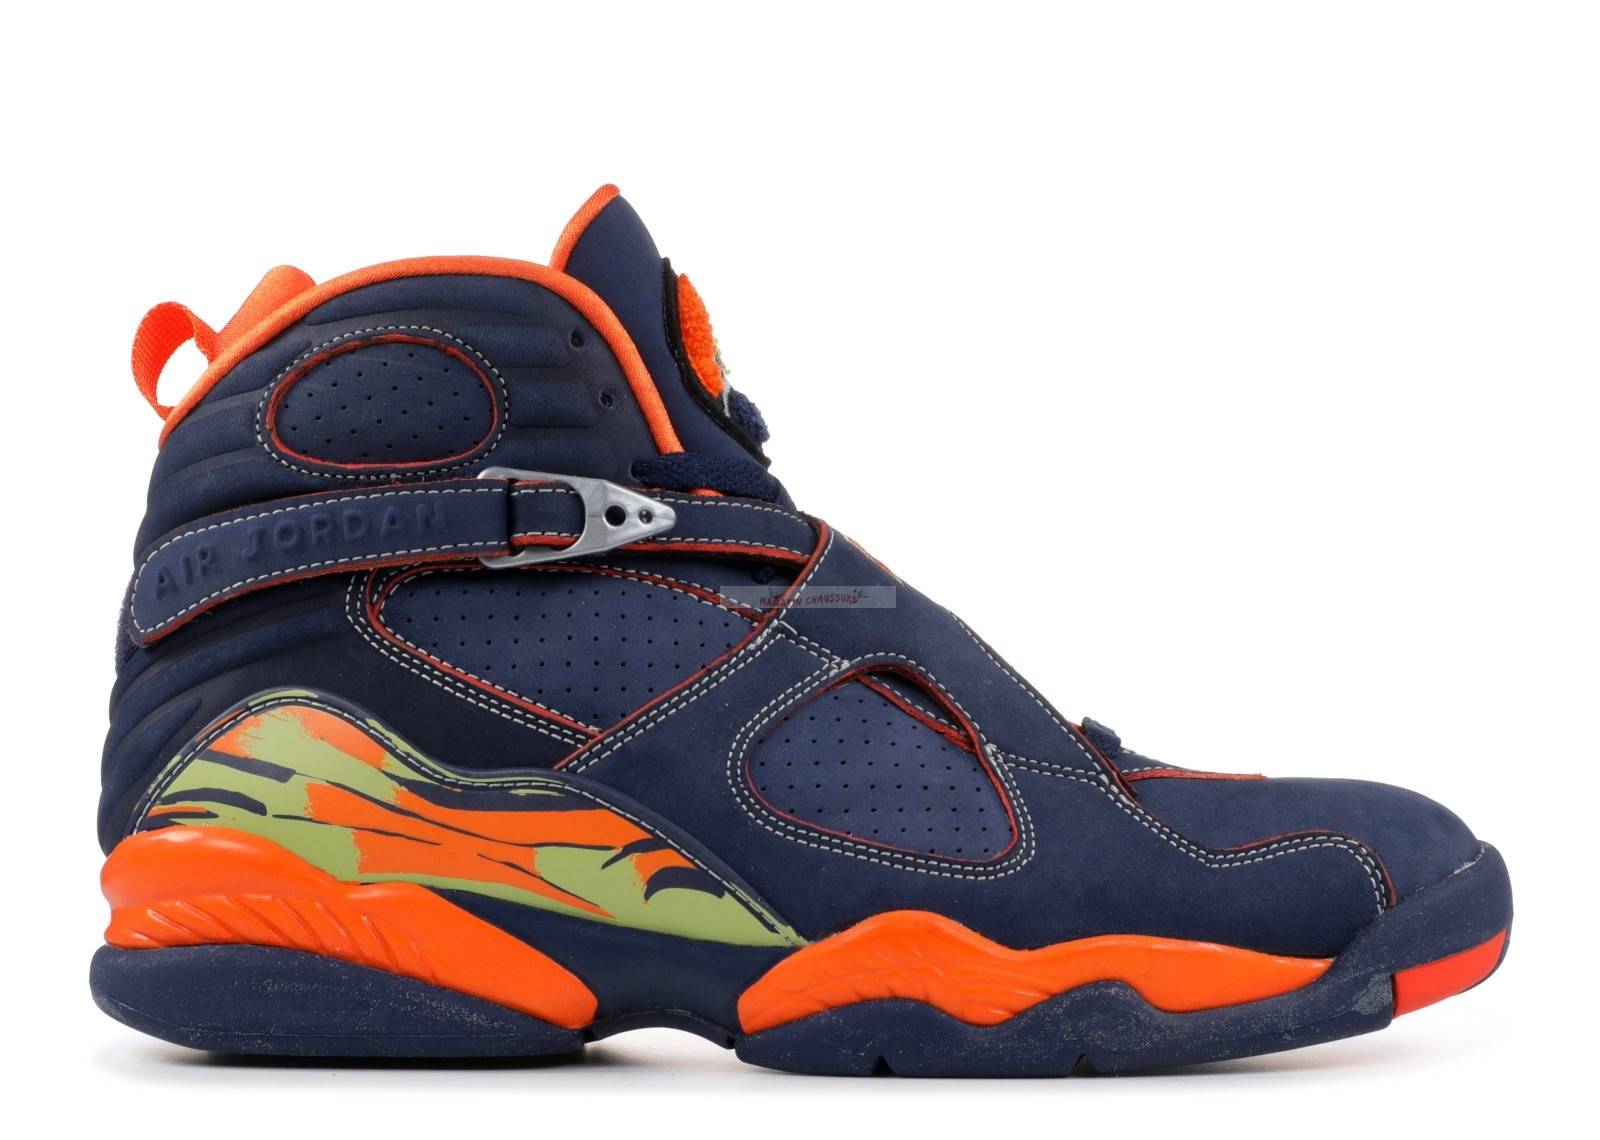 Air Jordan 8 Retro Ls Marine Orange (316324-481) Chaussure de Basket